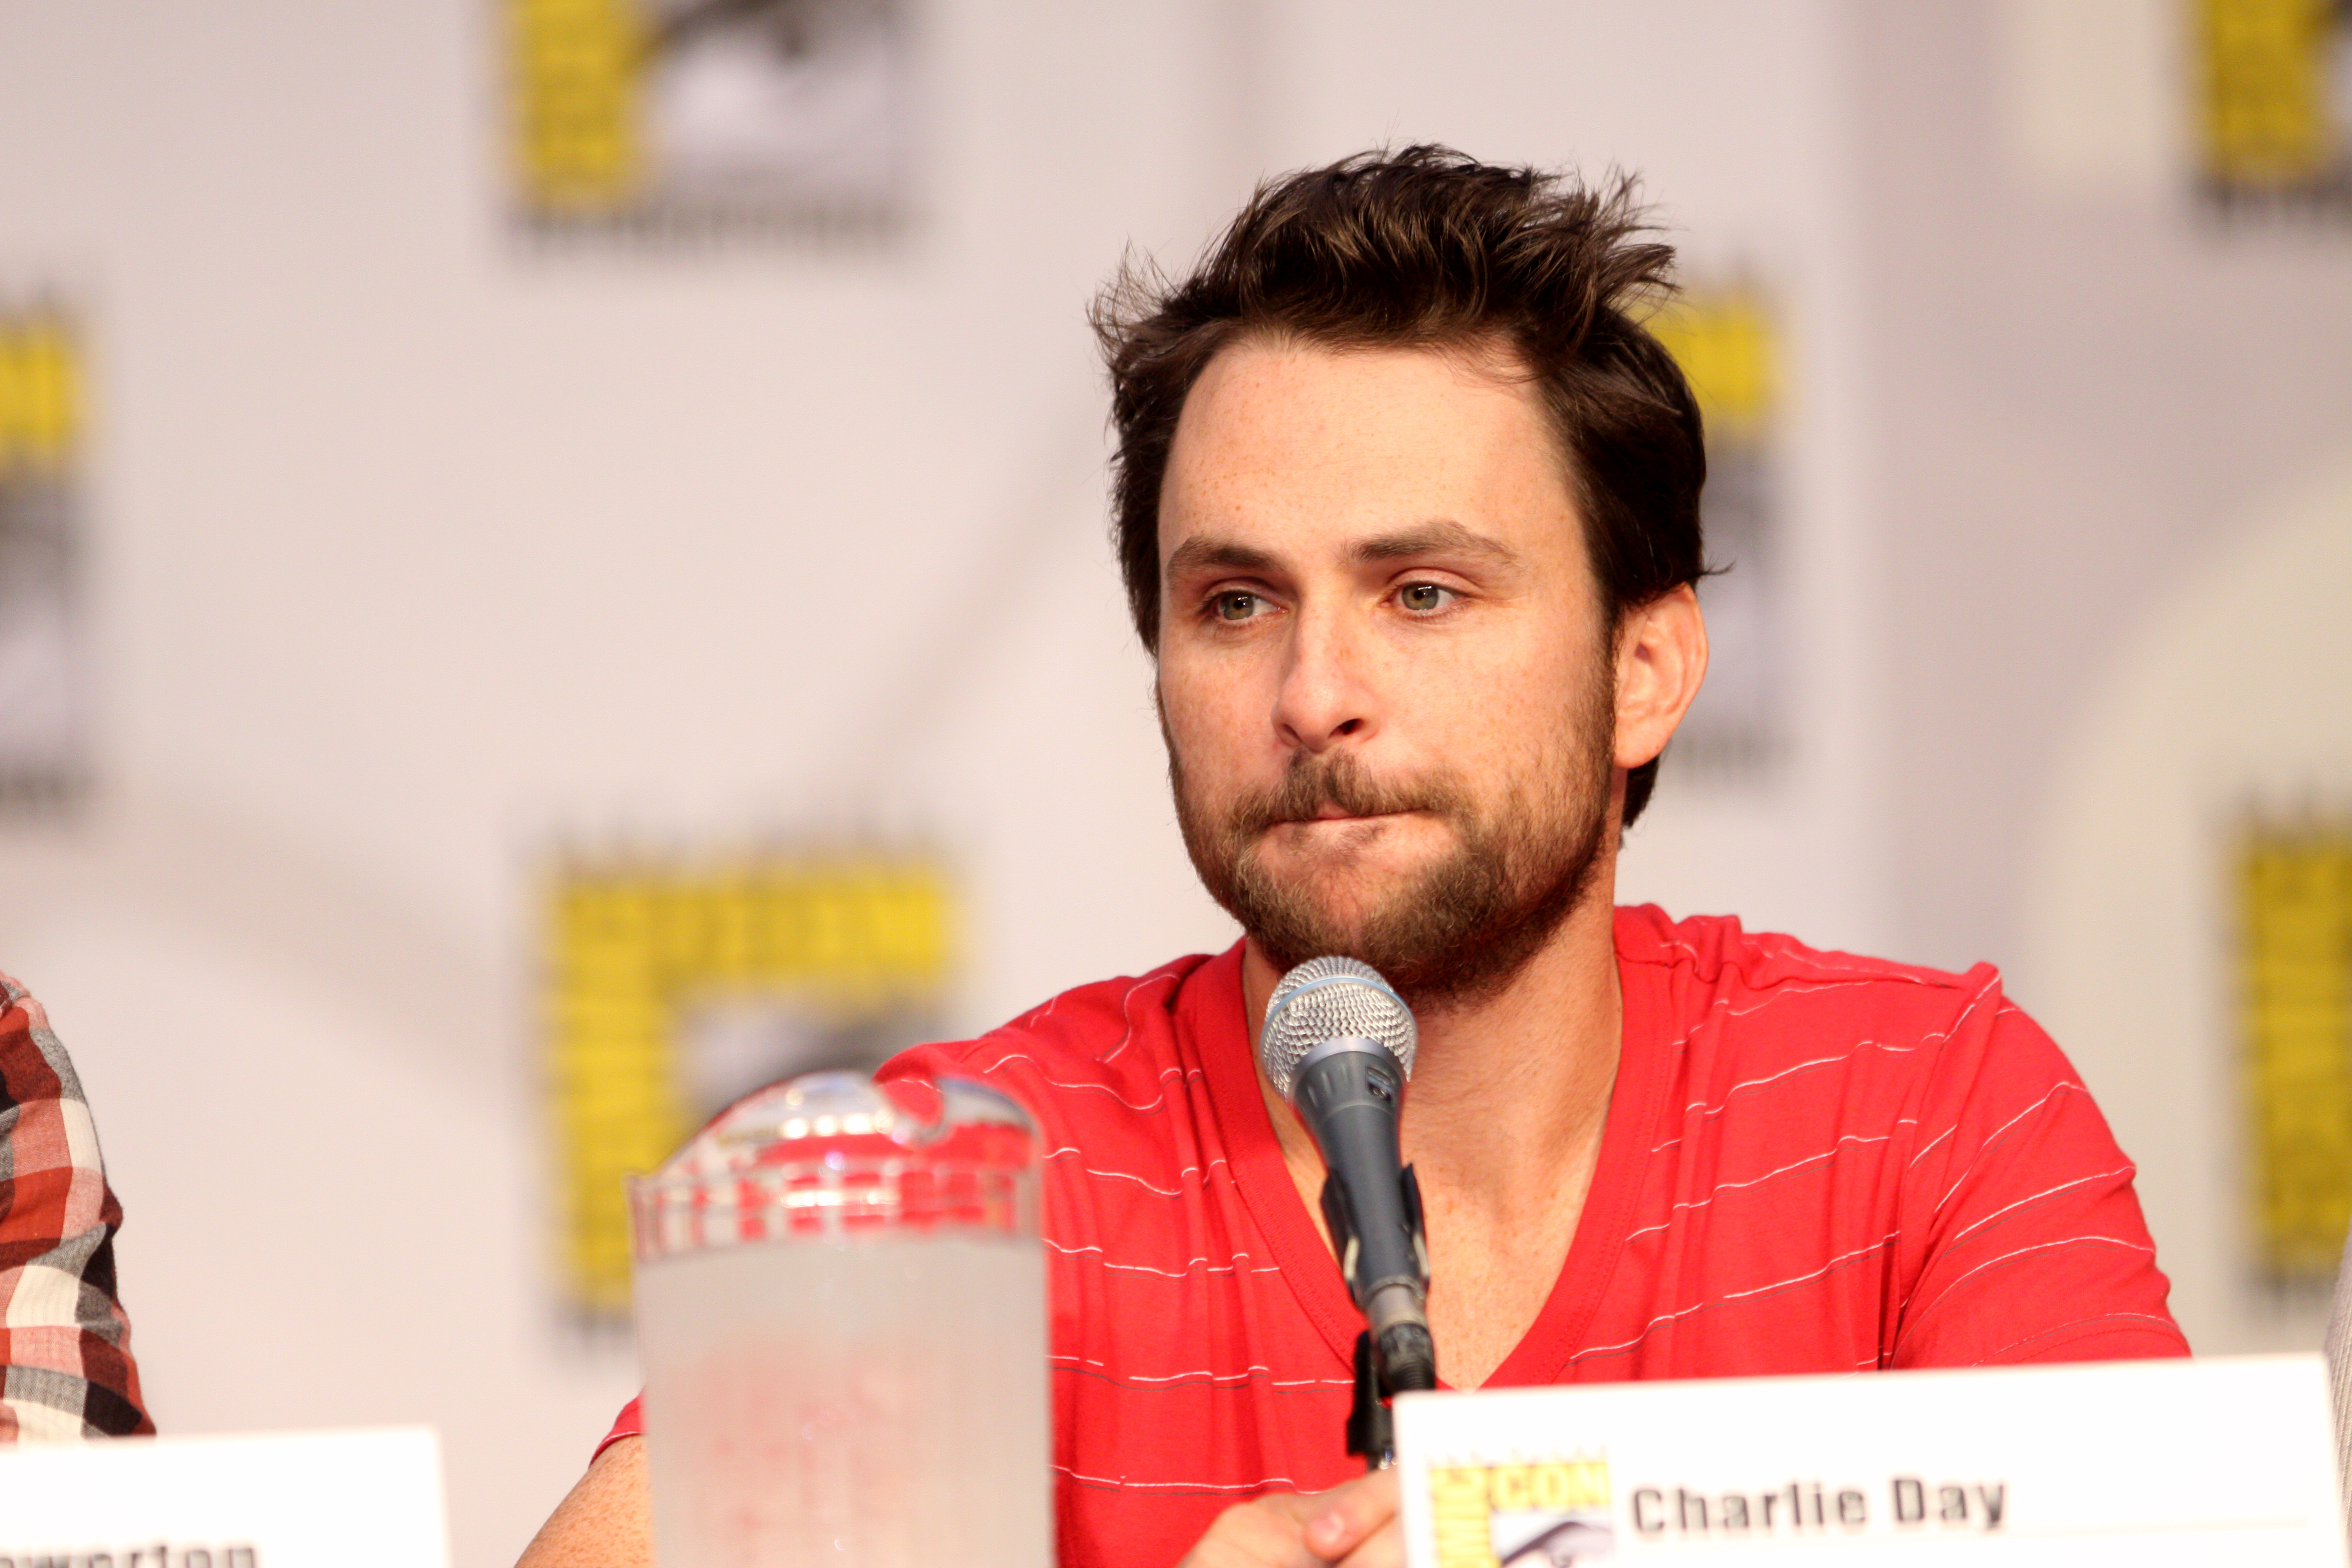 charlie day political viewscharlie day height, charlie day wife, charlie day pacific rim, charlie day ice cube, charlie day singing, charlie day and mary elizabeth ellis, charlie day movies, charlie day it's always sunny, charlie day tattoos, charlie day and danny devito, charlie day interview, charlie day costume, charlie day eyes, charlie day political views, charlie day t shirt, charlie day son, charlie day pepe silvia, charlie day networth, charlie day official, charlie day bald